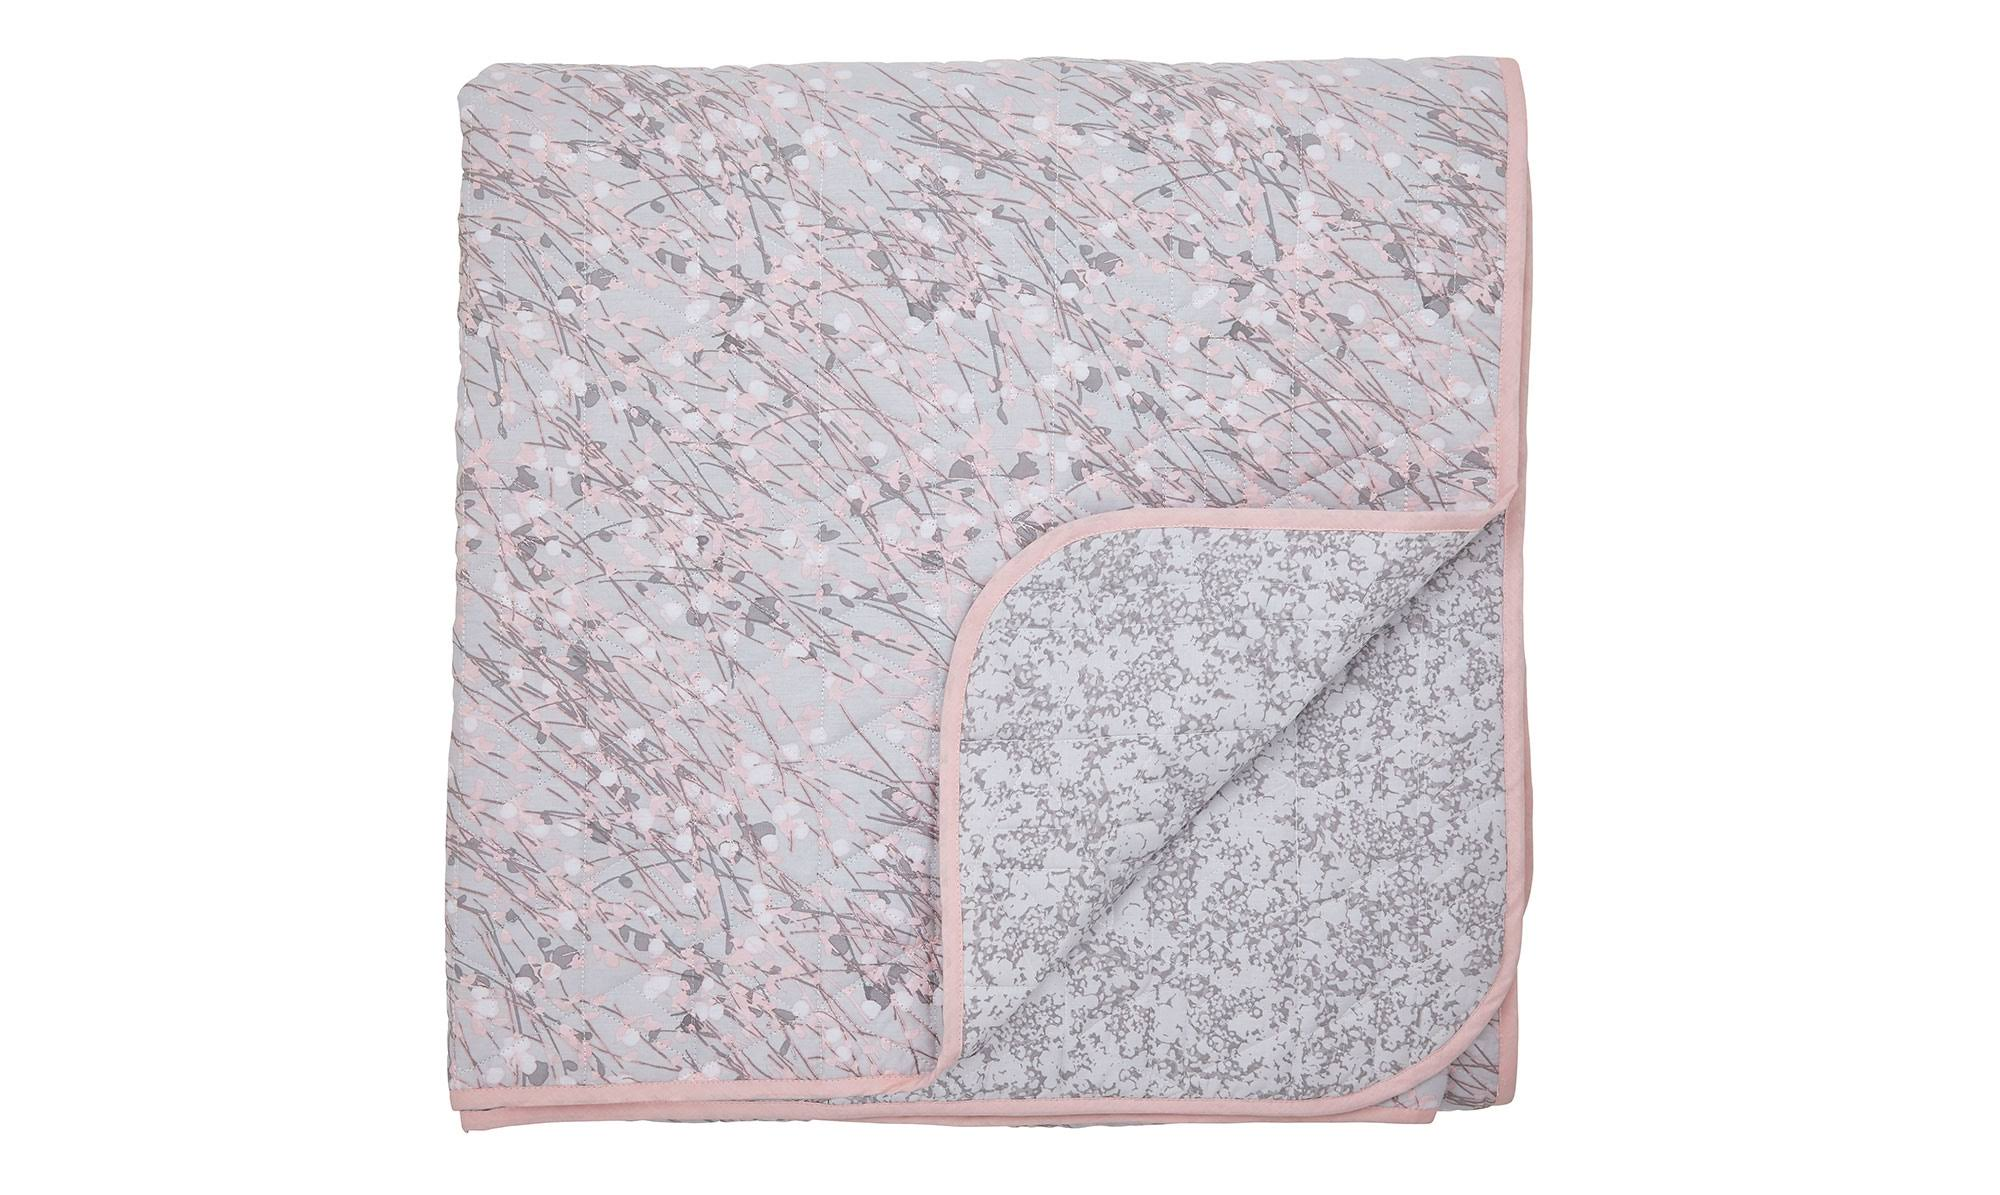 DKNY Bryant Park Quilted Throw, Blush